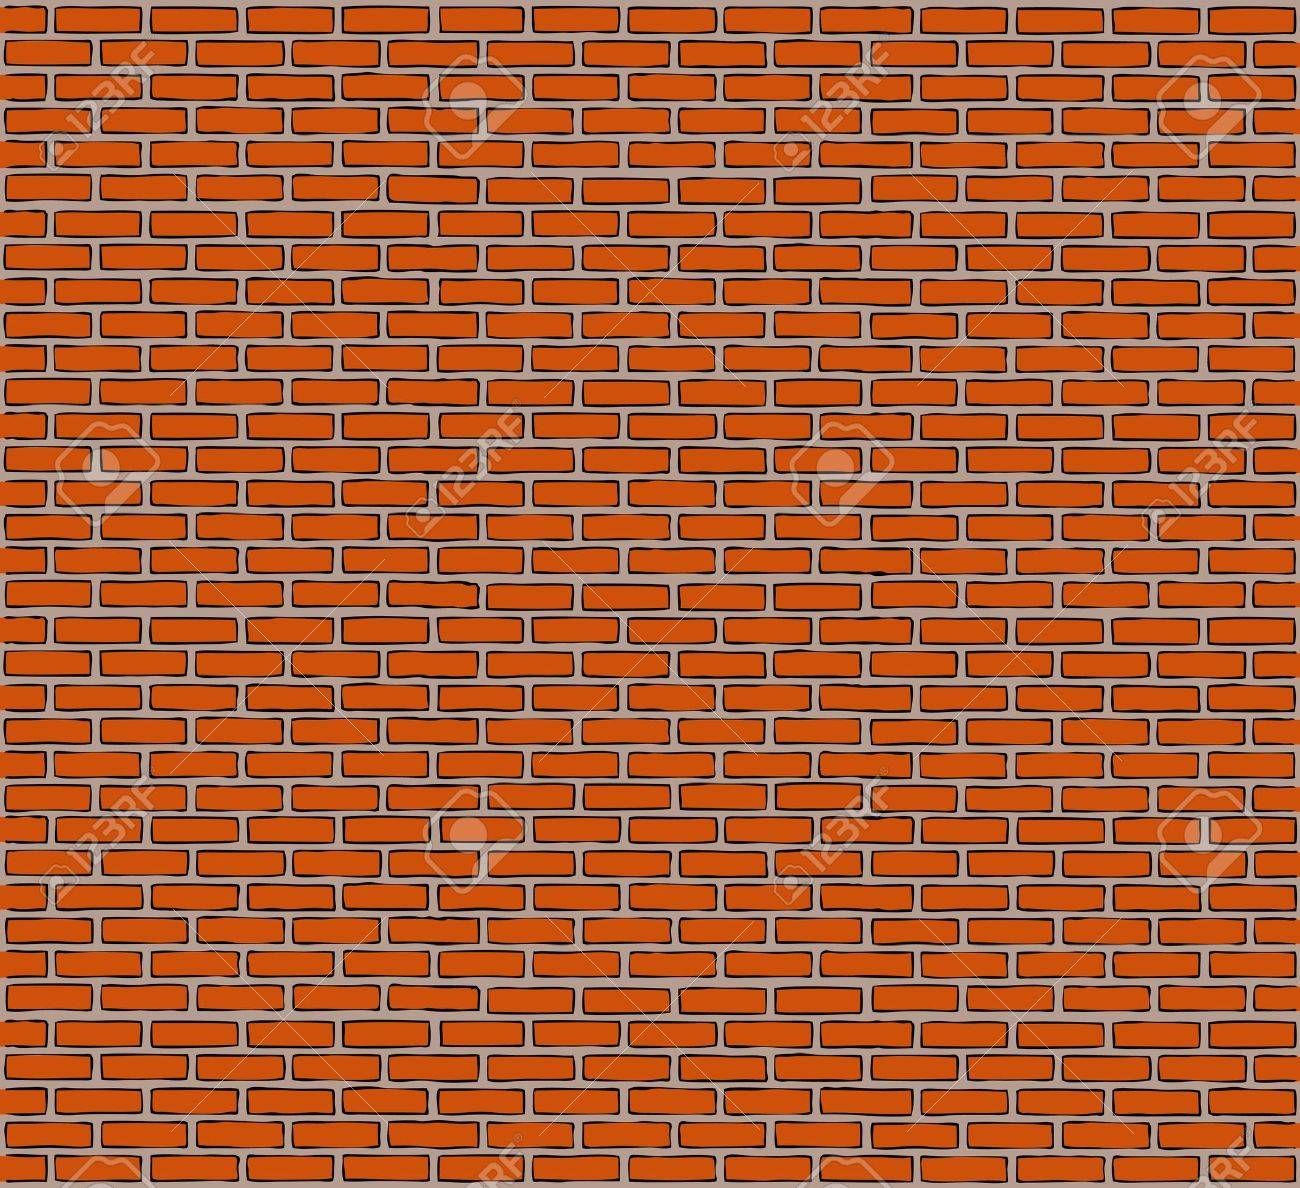 cartoon brick wall background illustration royalty free cliparts rh 123rf com cartoon brick wall background cartoon brick wallpaper